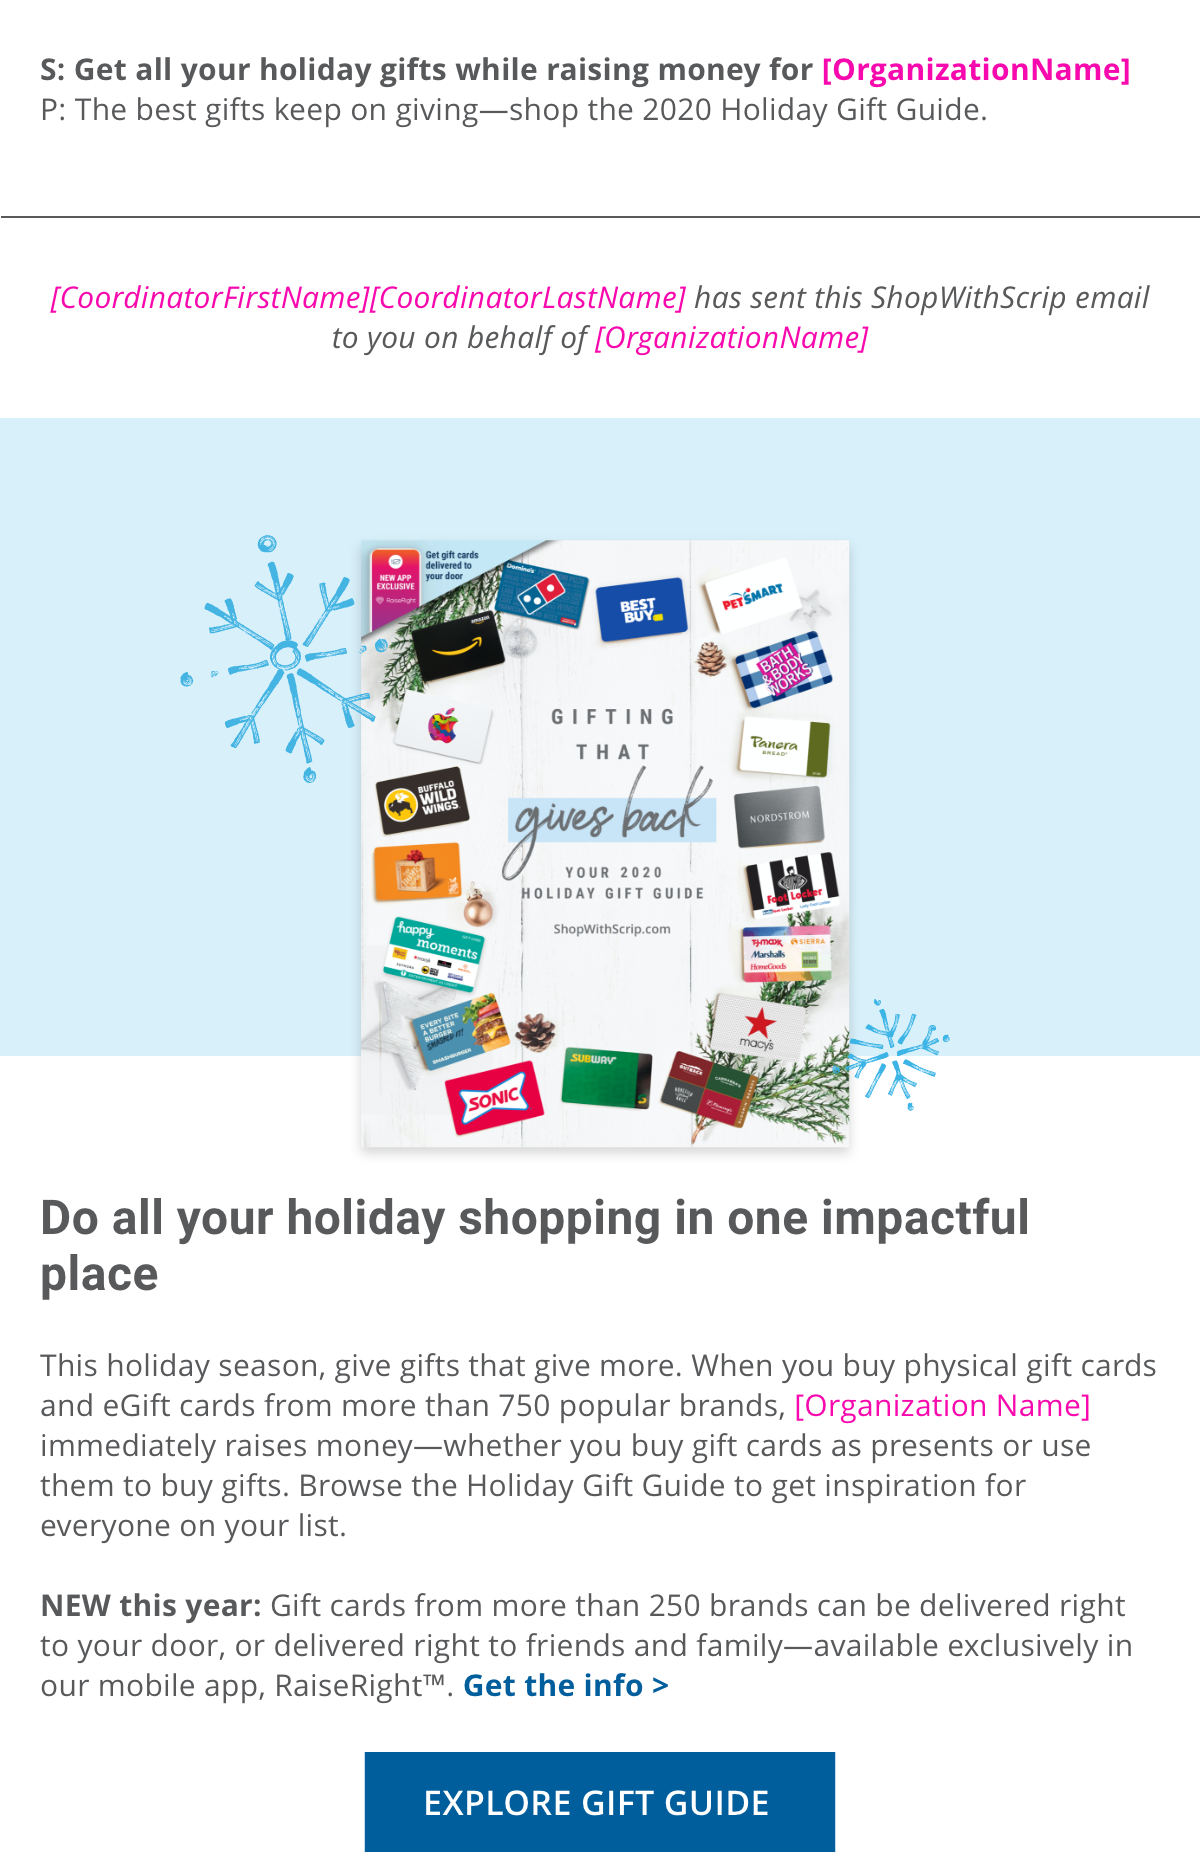 gift guide email tool